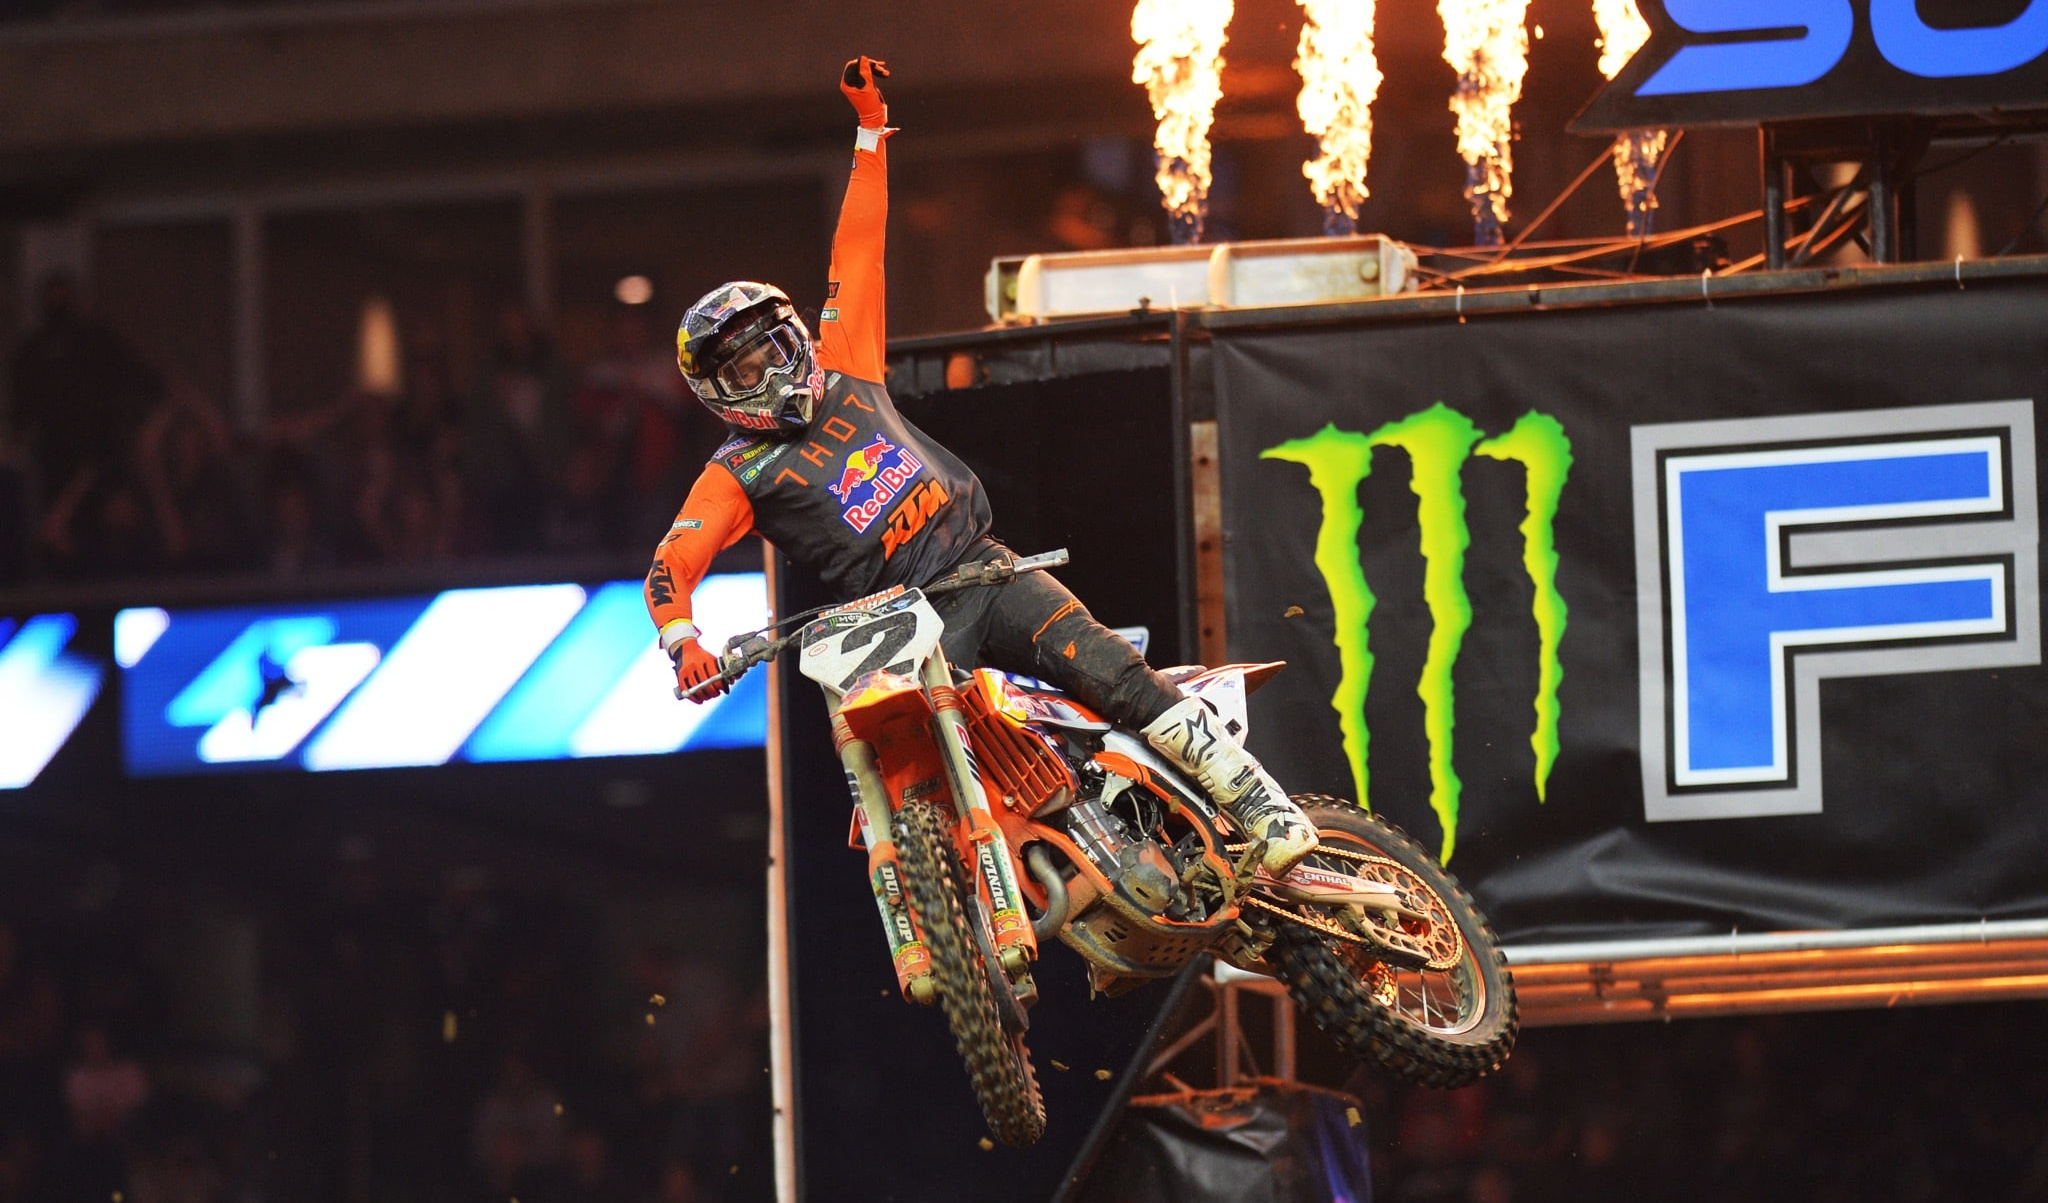 2021 SUPERCROSS SEASON POINT STANDINGS AFTER ROUND 3